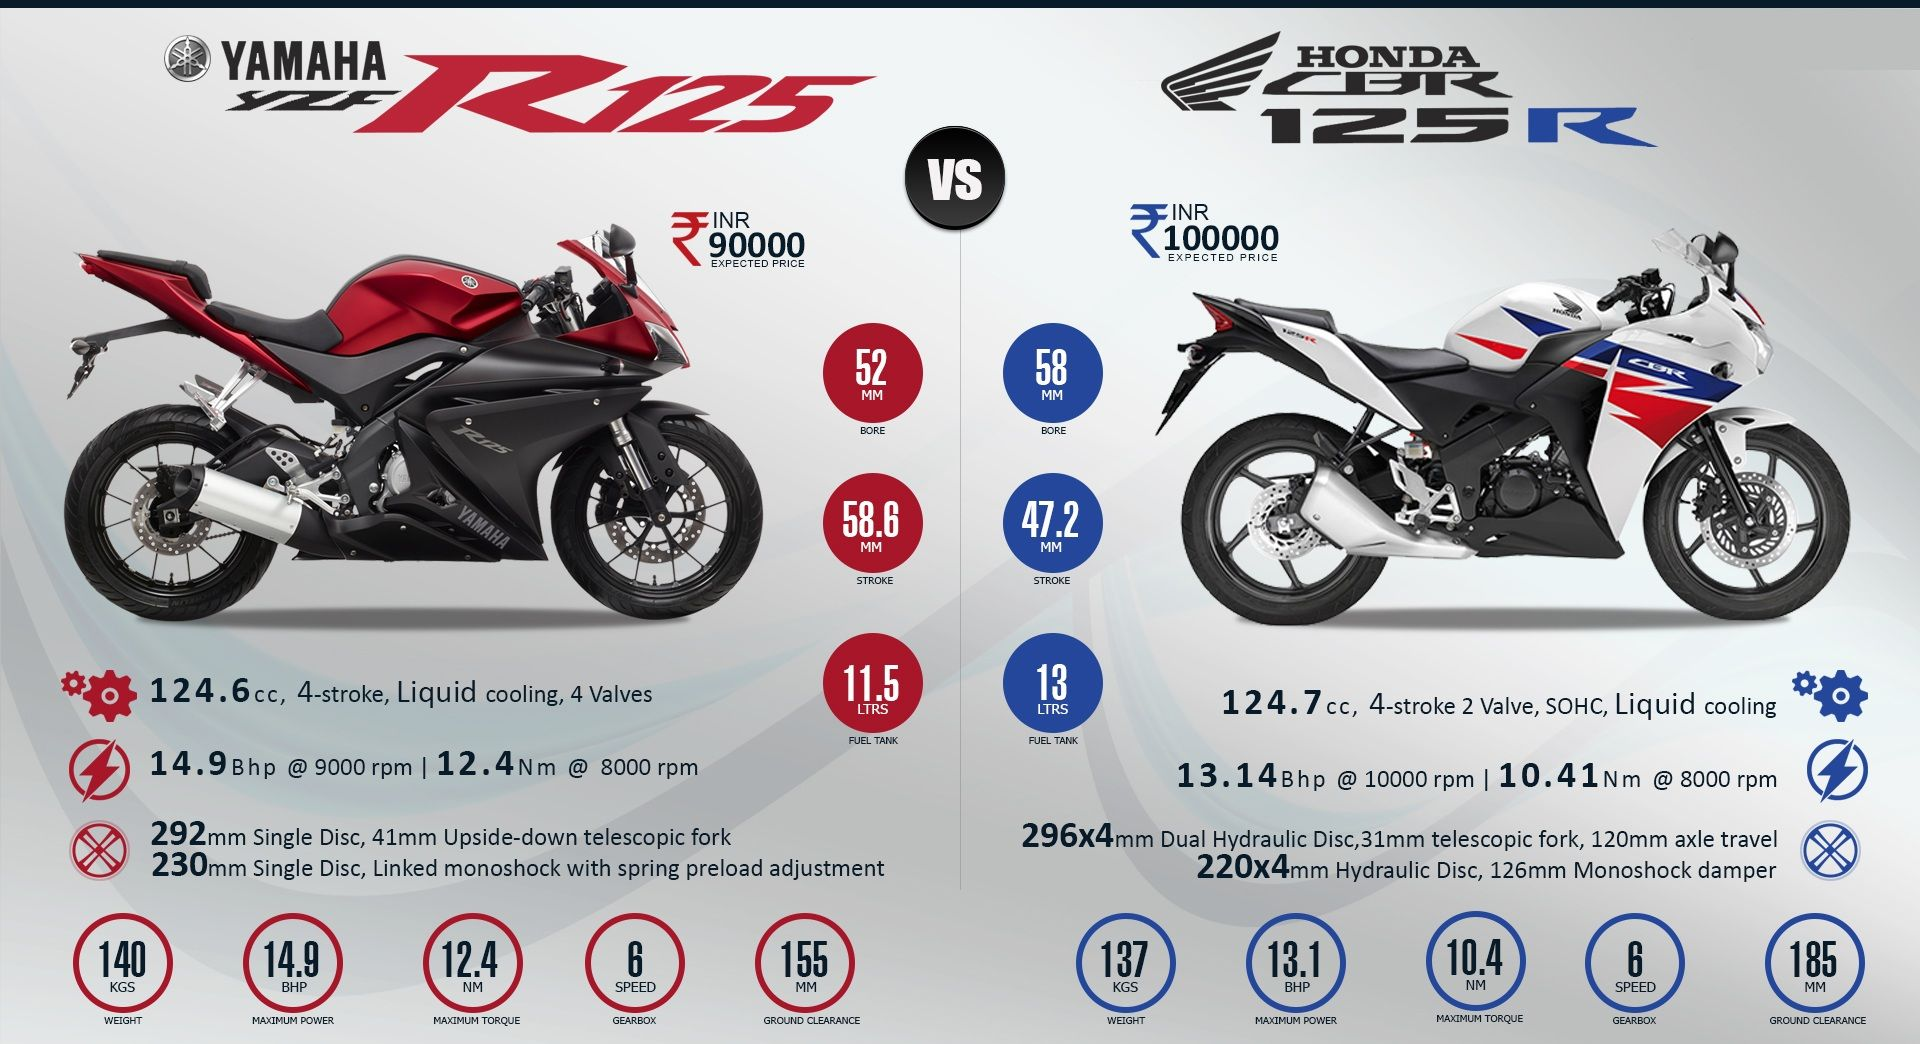 Honda Cbr 125r Or Yamaha R125 Which On You Will Pick Bestbike